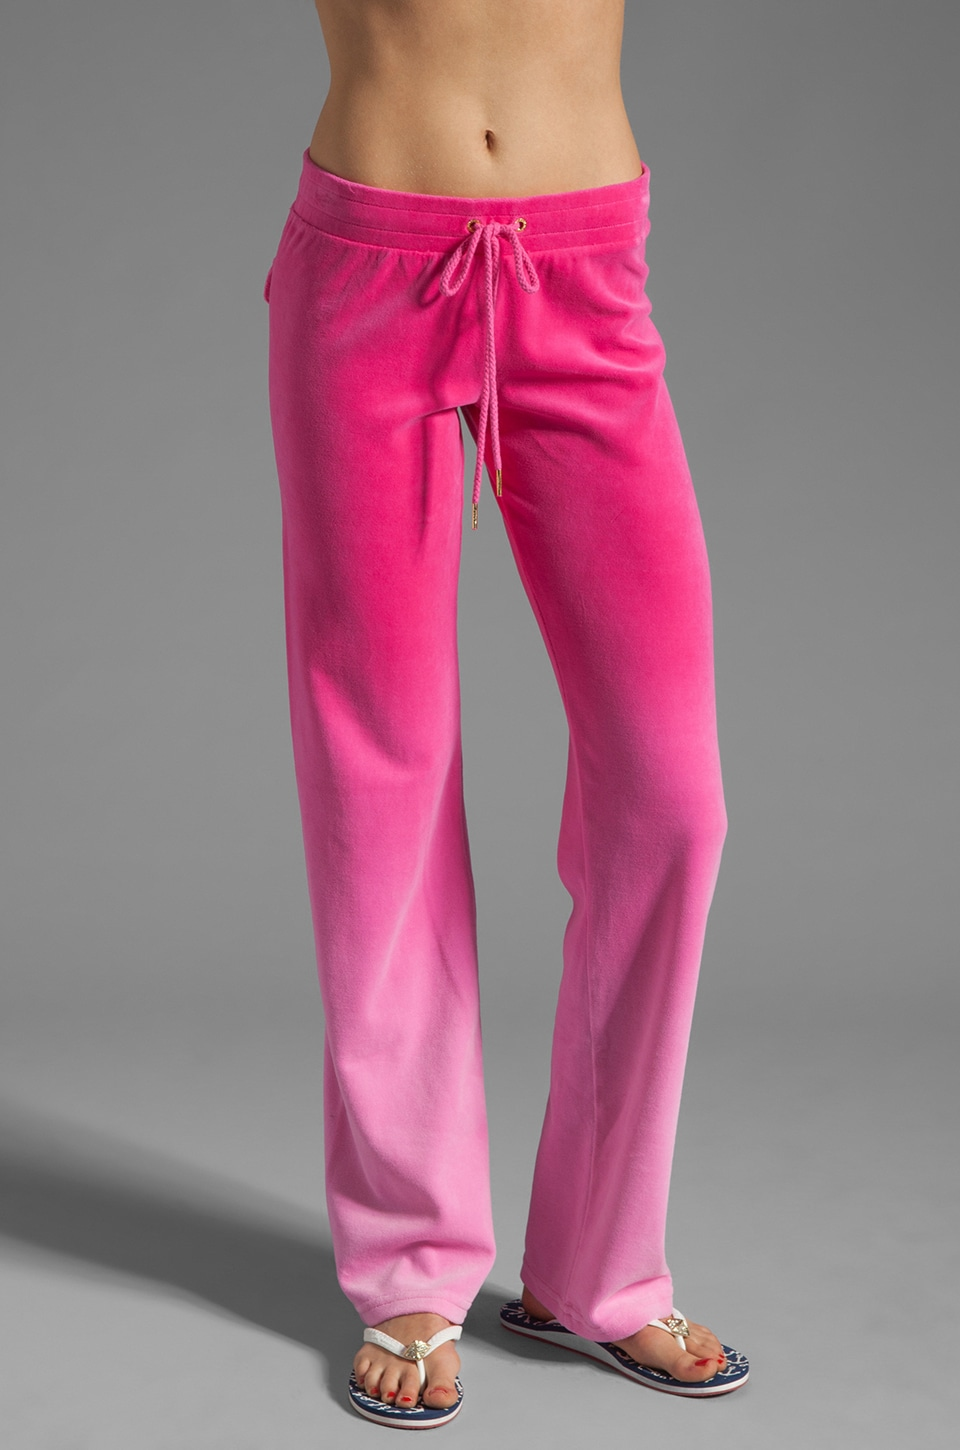 Juicy Couture Ombre Velour Track Pant in Passion Pink Ombre